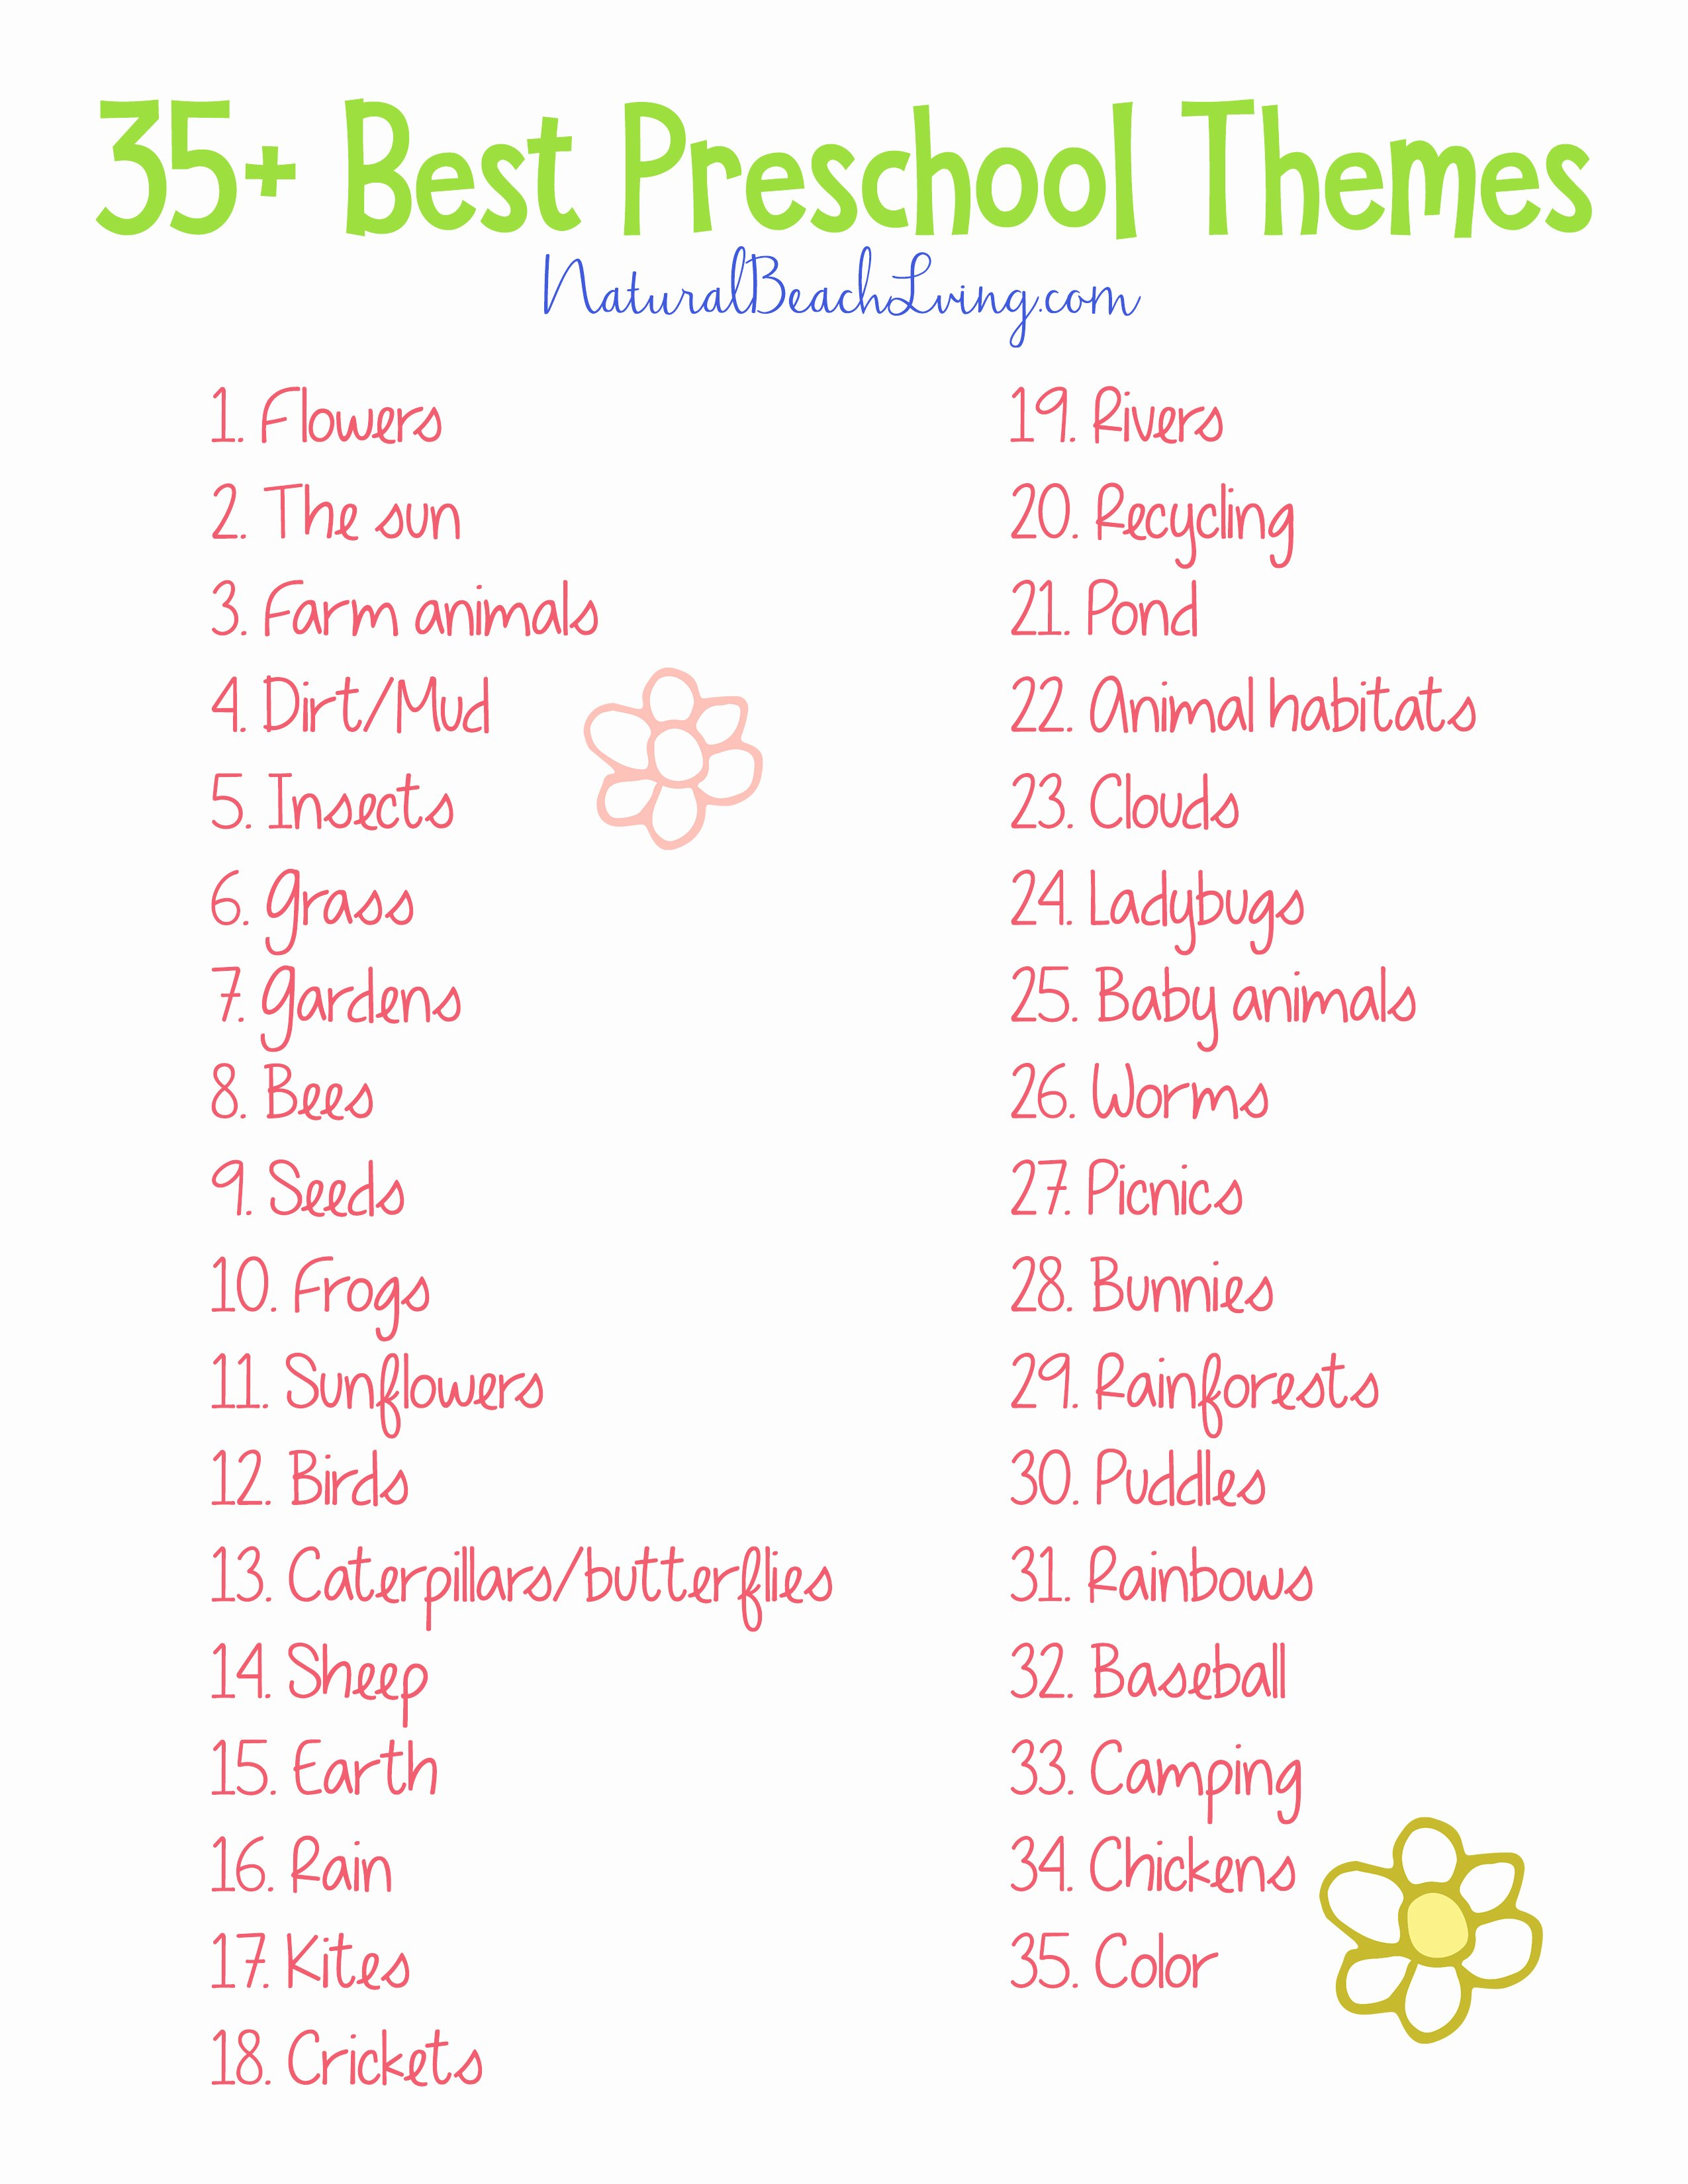 Lessons Plans for toddlers Elegant 35 the Best Spring Preschool themes and Lesson Plans